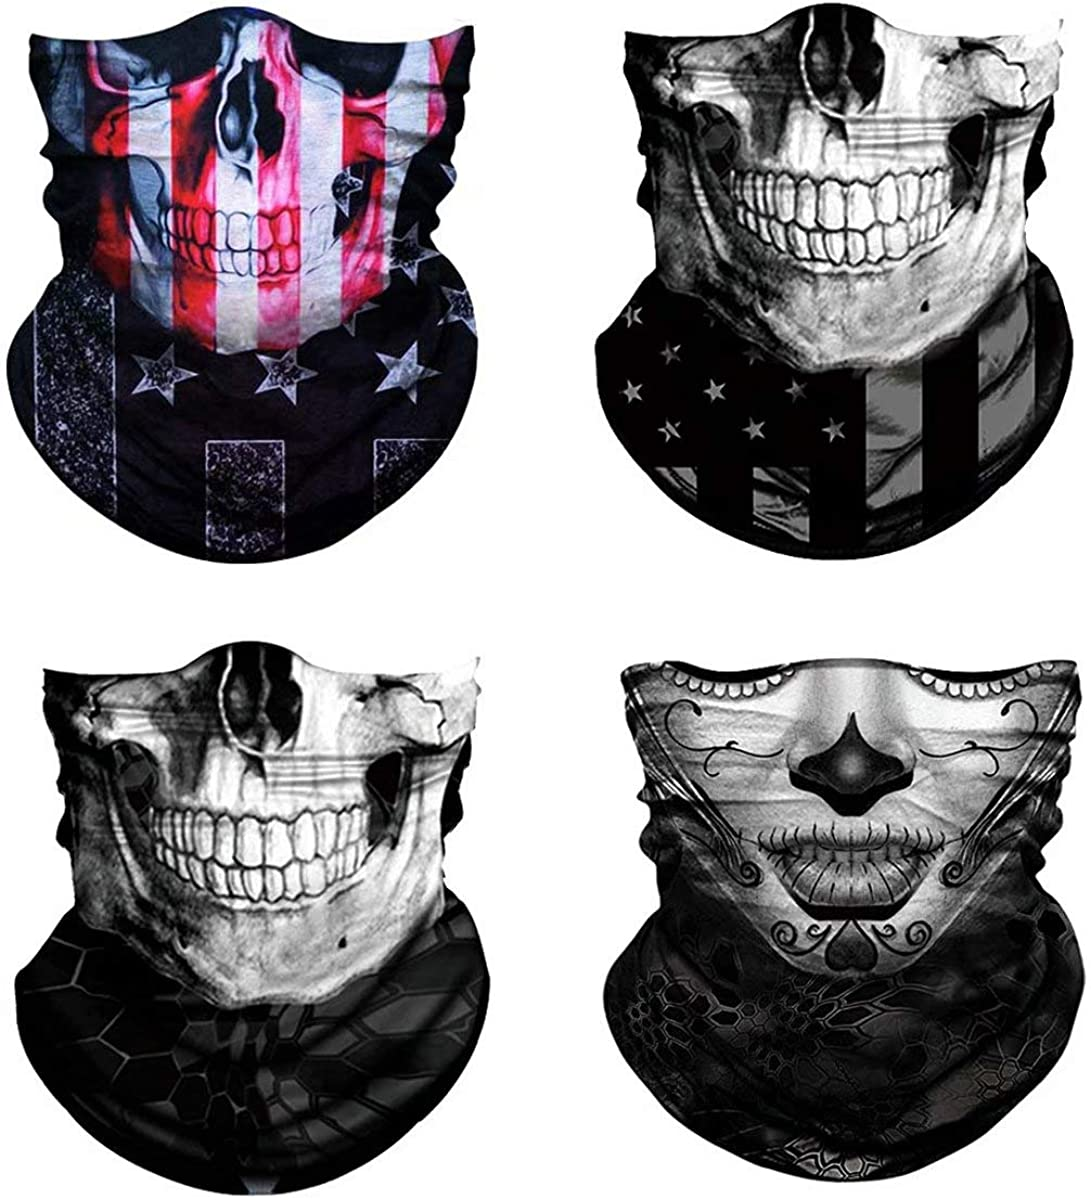 3D Skull Print Face Bandana Neck Gaiter, Reusable Washable Cloth Fabric Tube Scarf, Halloween Balaclava for Men Women